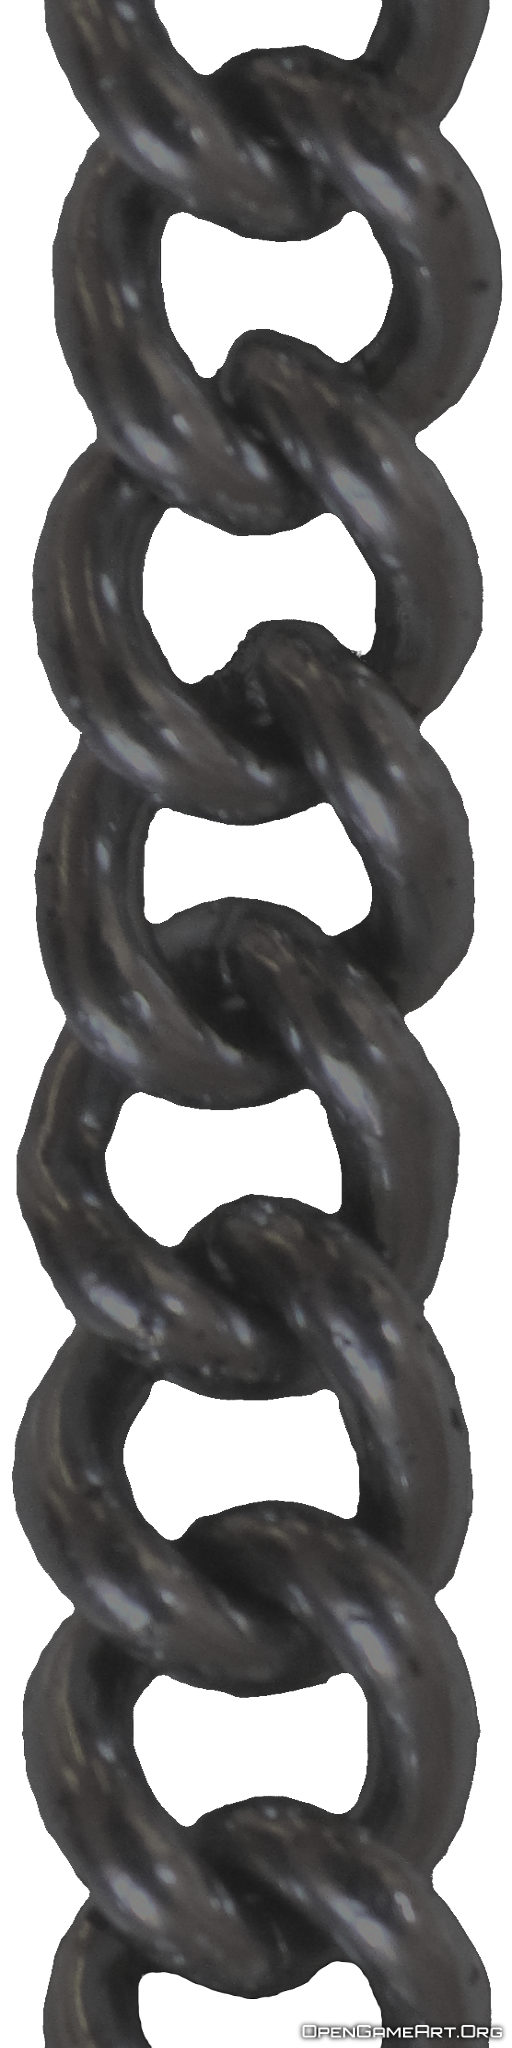 Black chain png. Images gallery free download